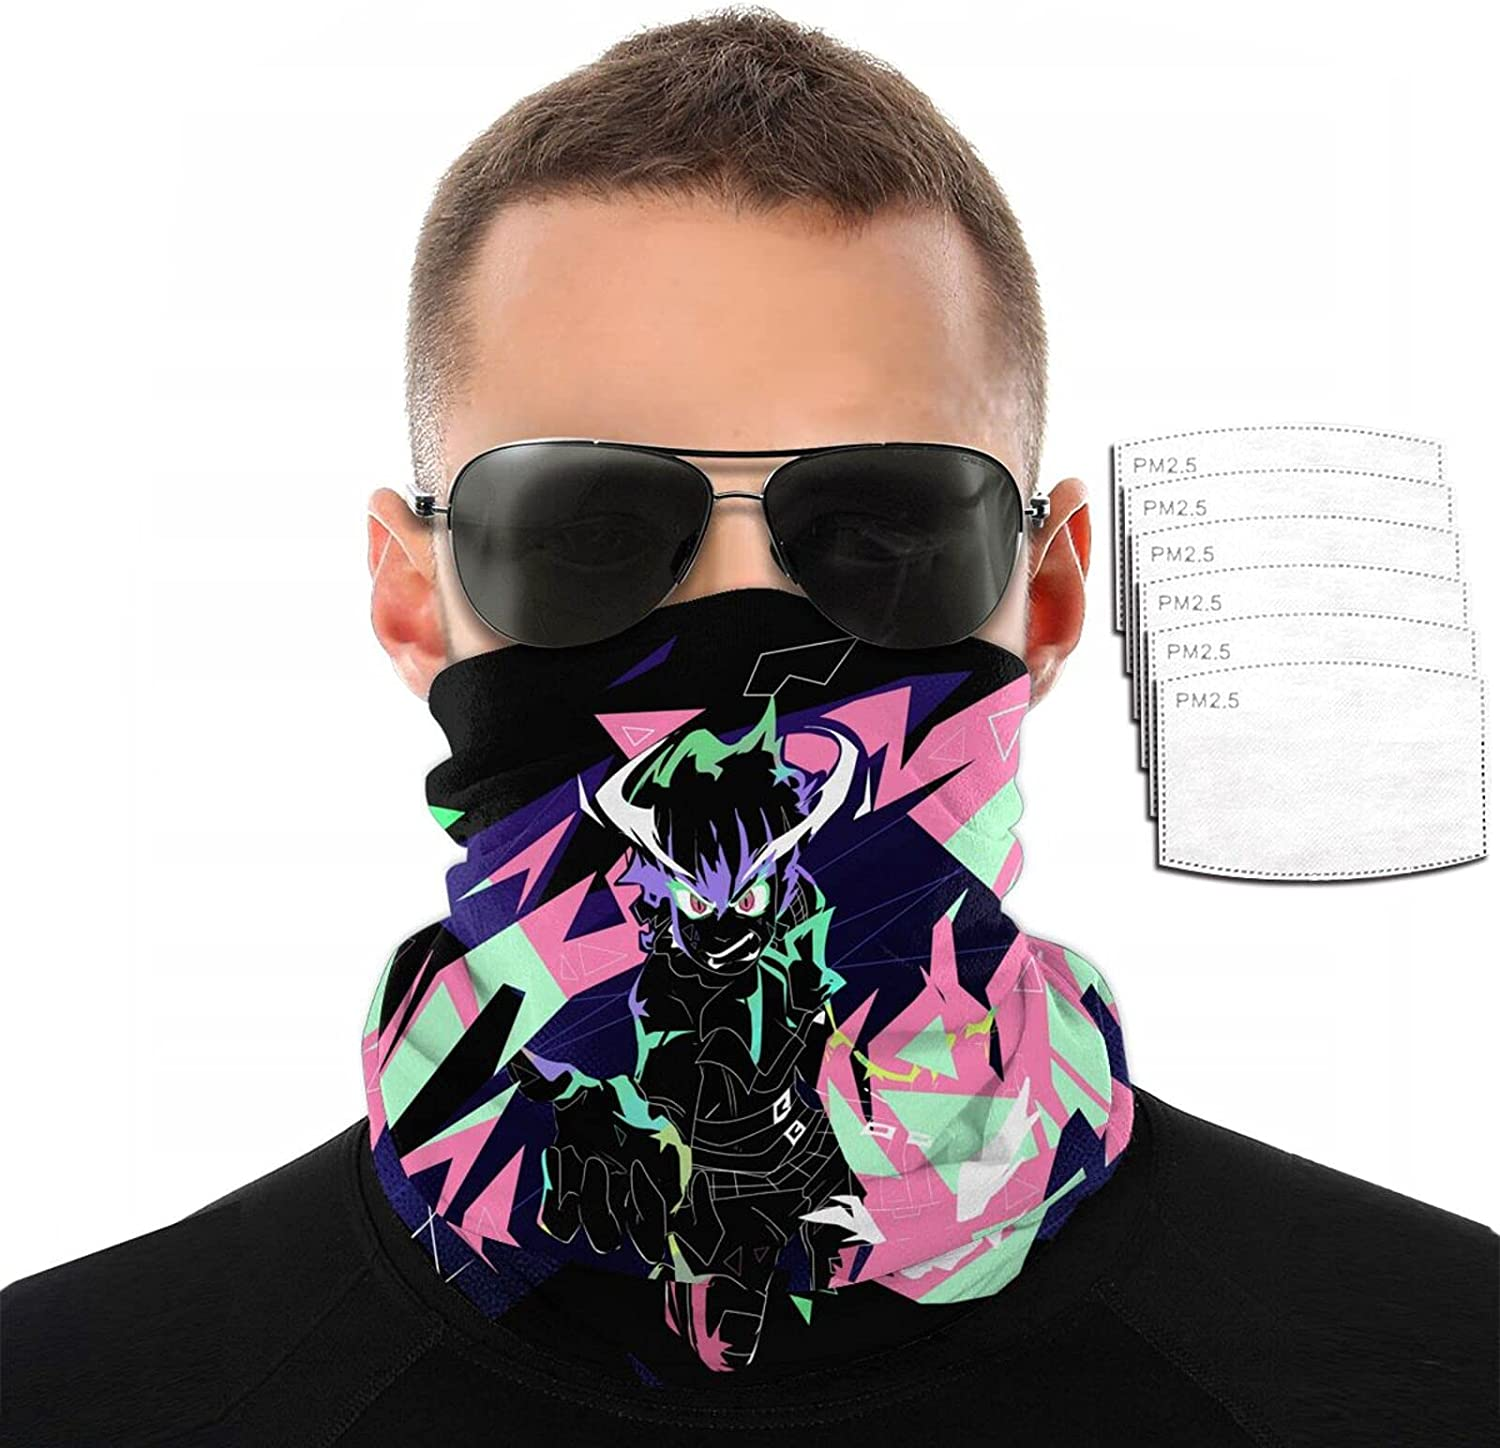 Anime Promare Variety Face Towel 3D Sun Scarf Funny Max 2021new shipping free shipping 59% OFF Printing Pro